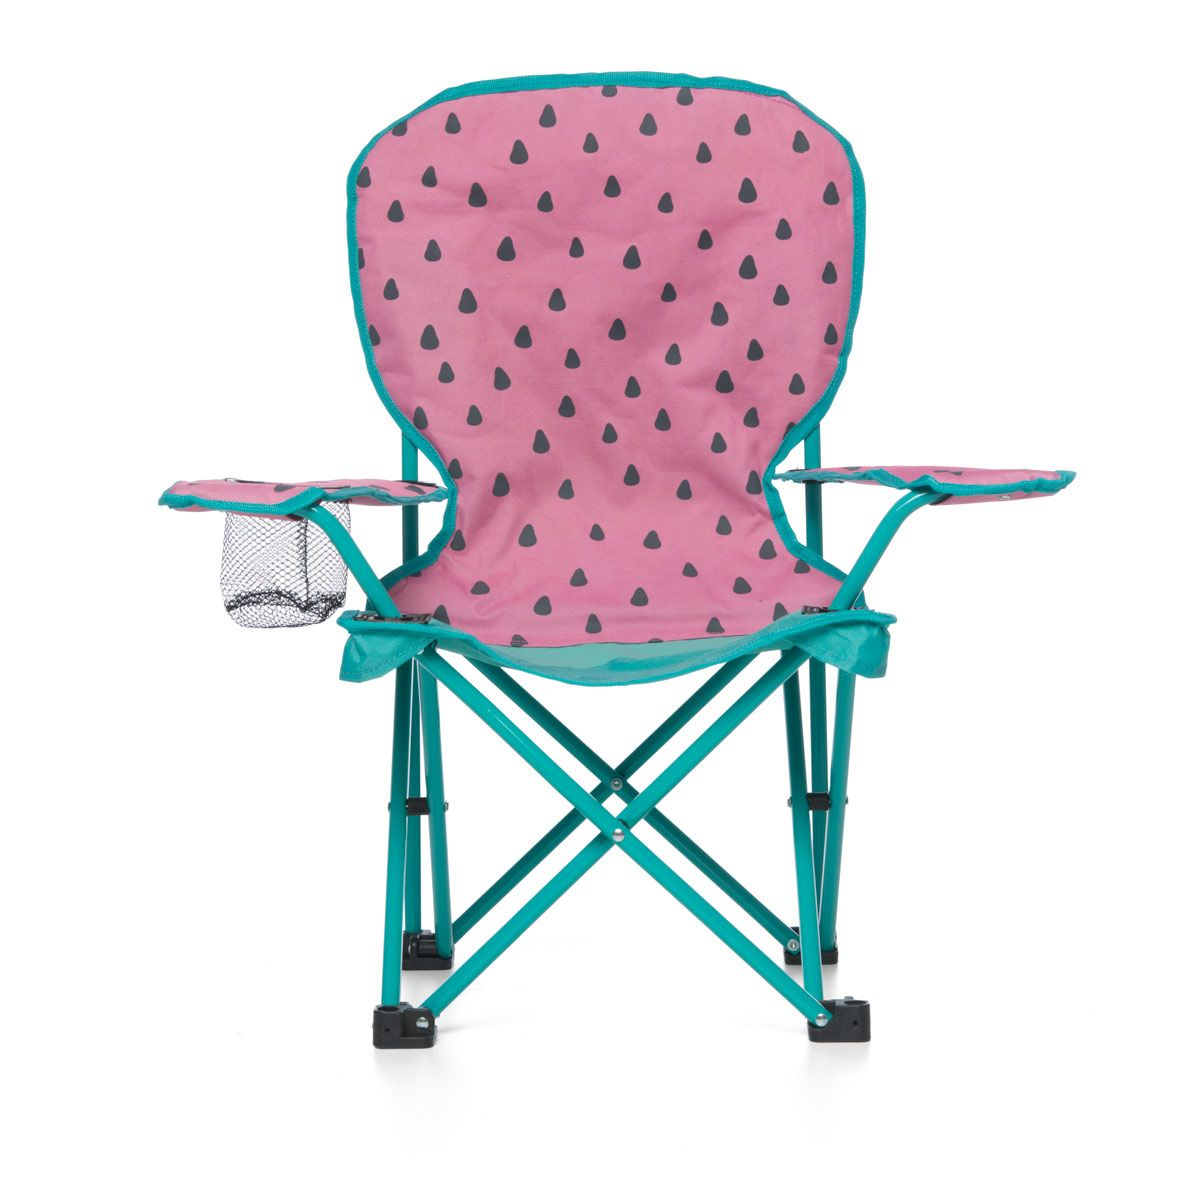 Watermelon Camp Chair | Kmart | WATERMELON | Pinterest | Camp chairs